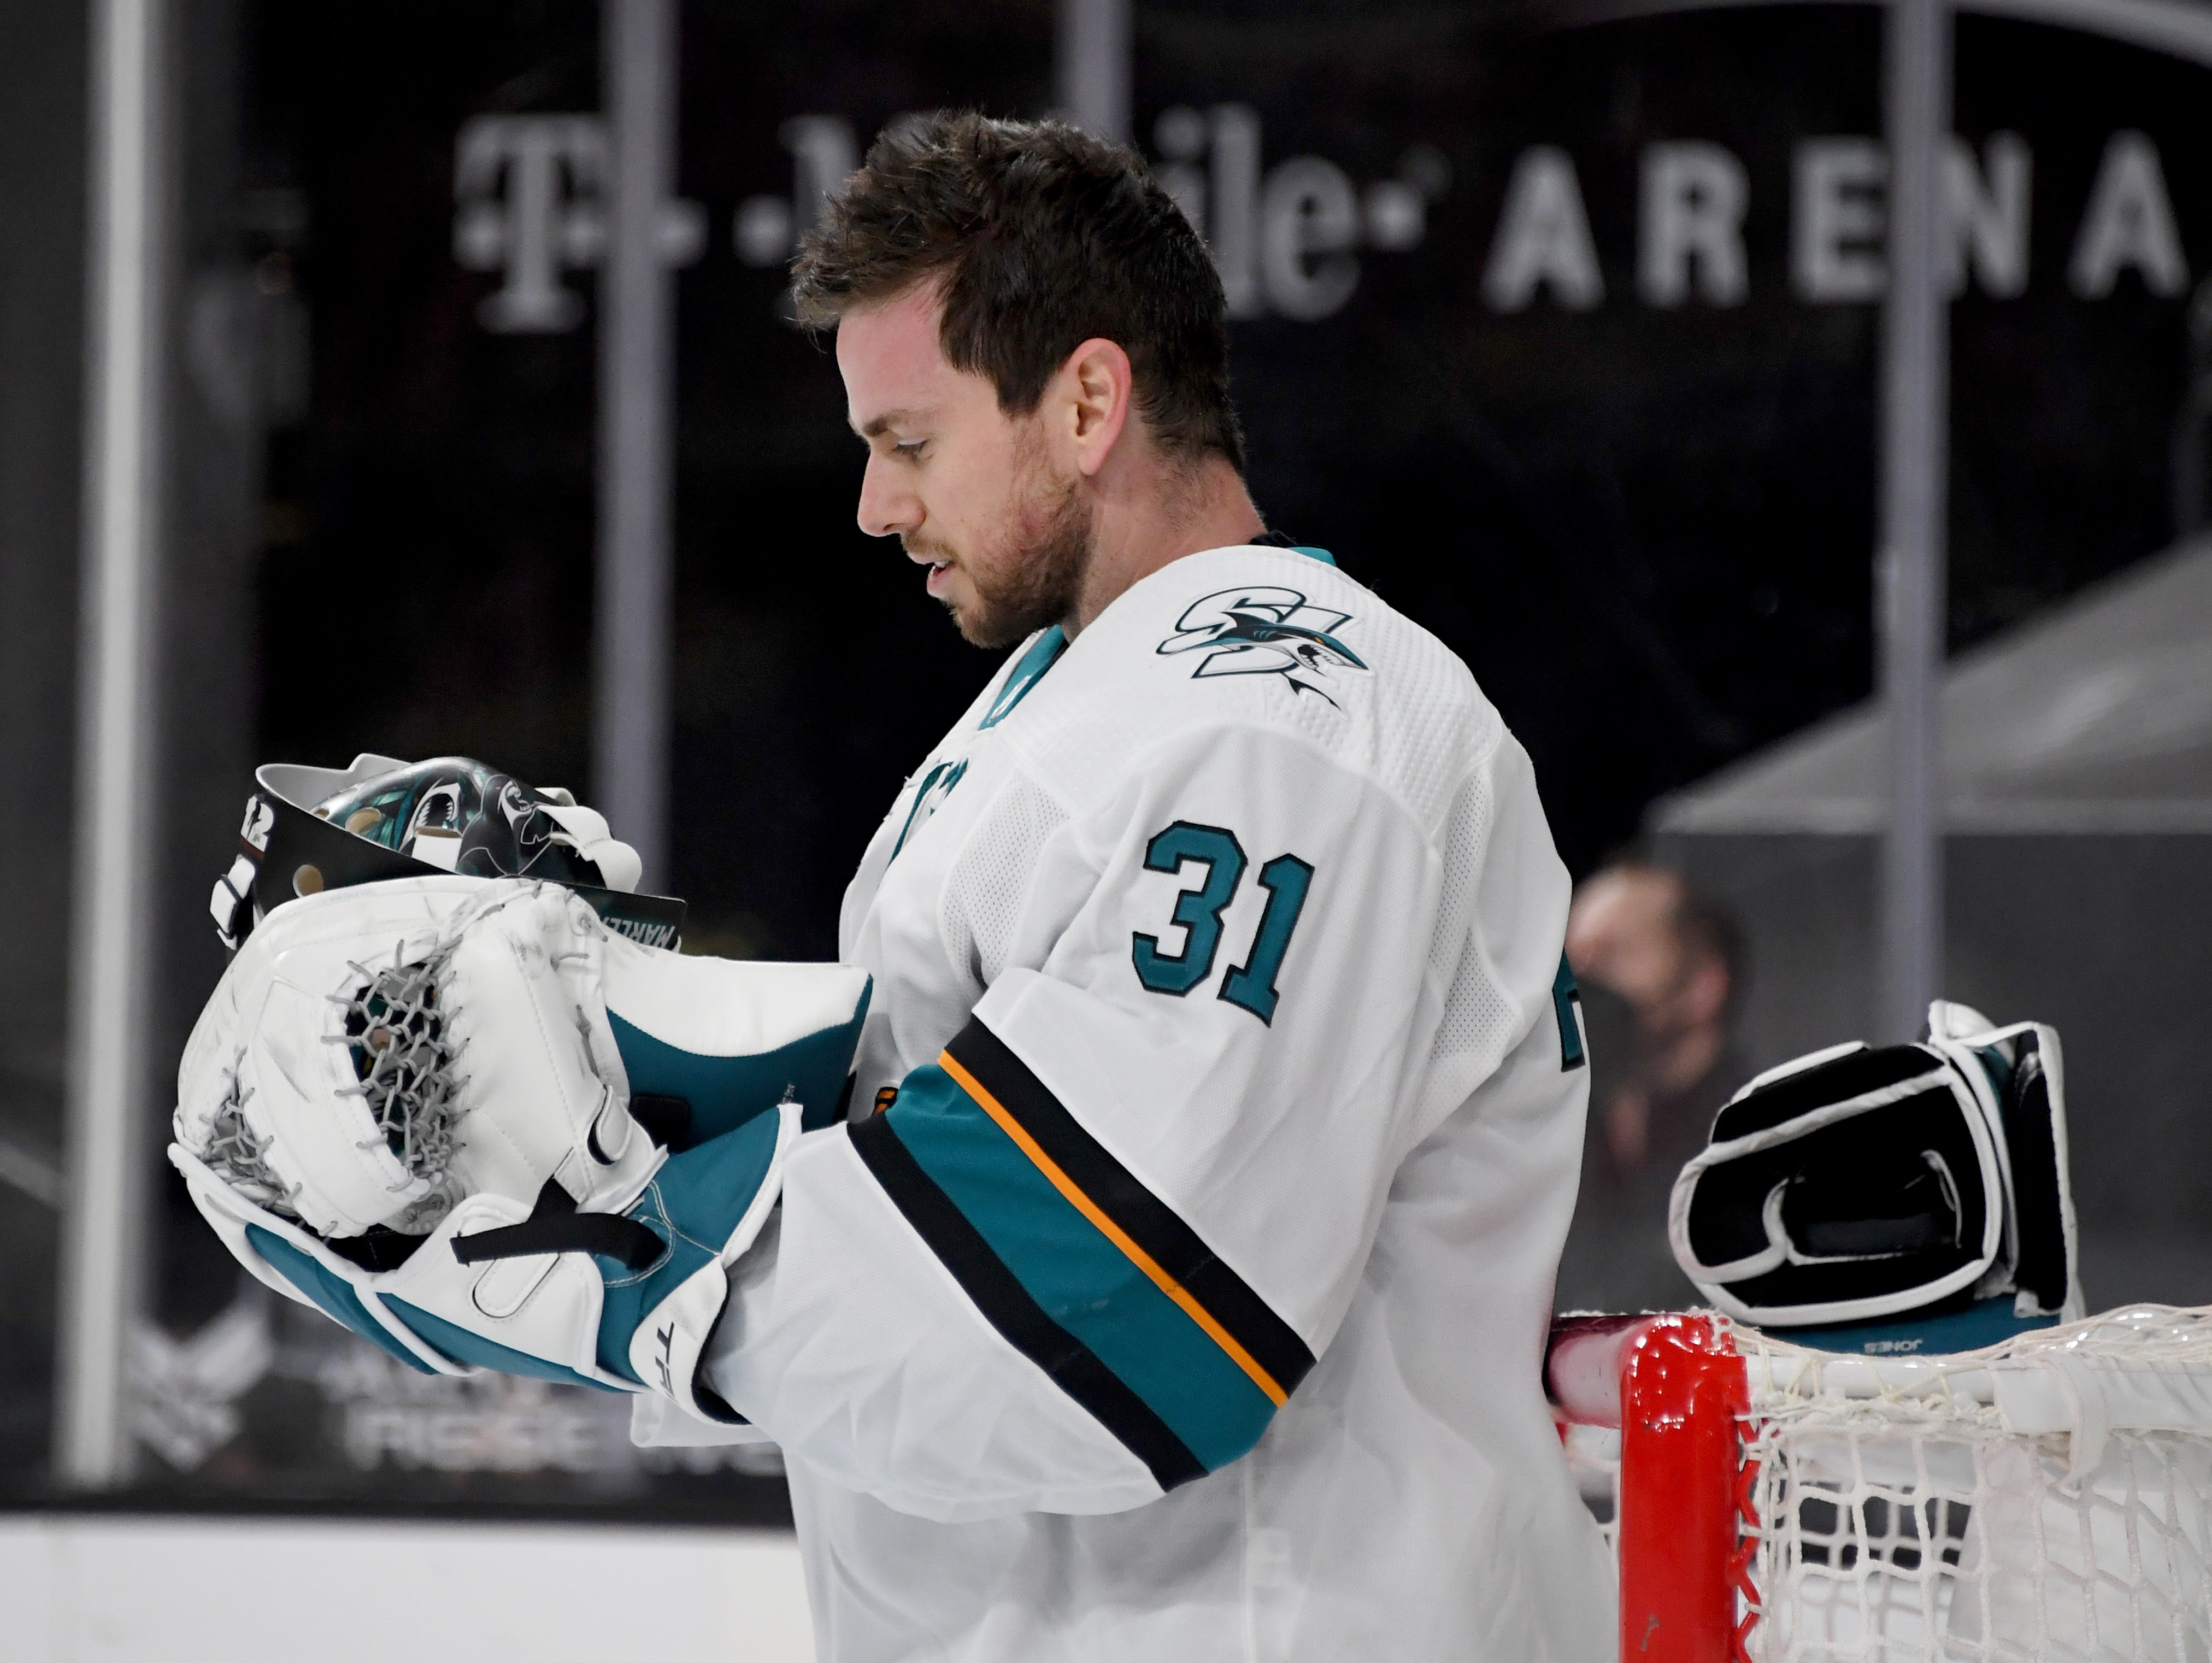 Martin Jones #31 of the San Jose Sharks takes a break during a stop in play during overtime of a game against the Vegas Golden Knights at T-Mobile Arena on April 19, 2021 in Las Vegas, Nevada. The Golden Knights defeated the Sharks 3-2 in a shootout.